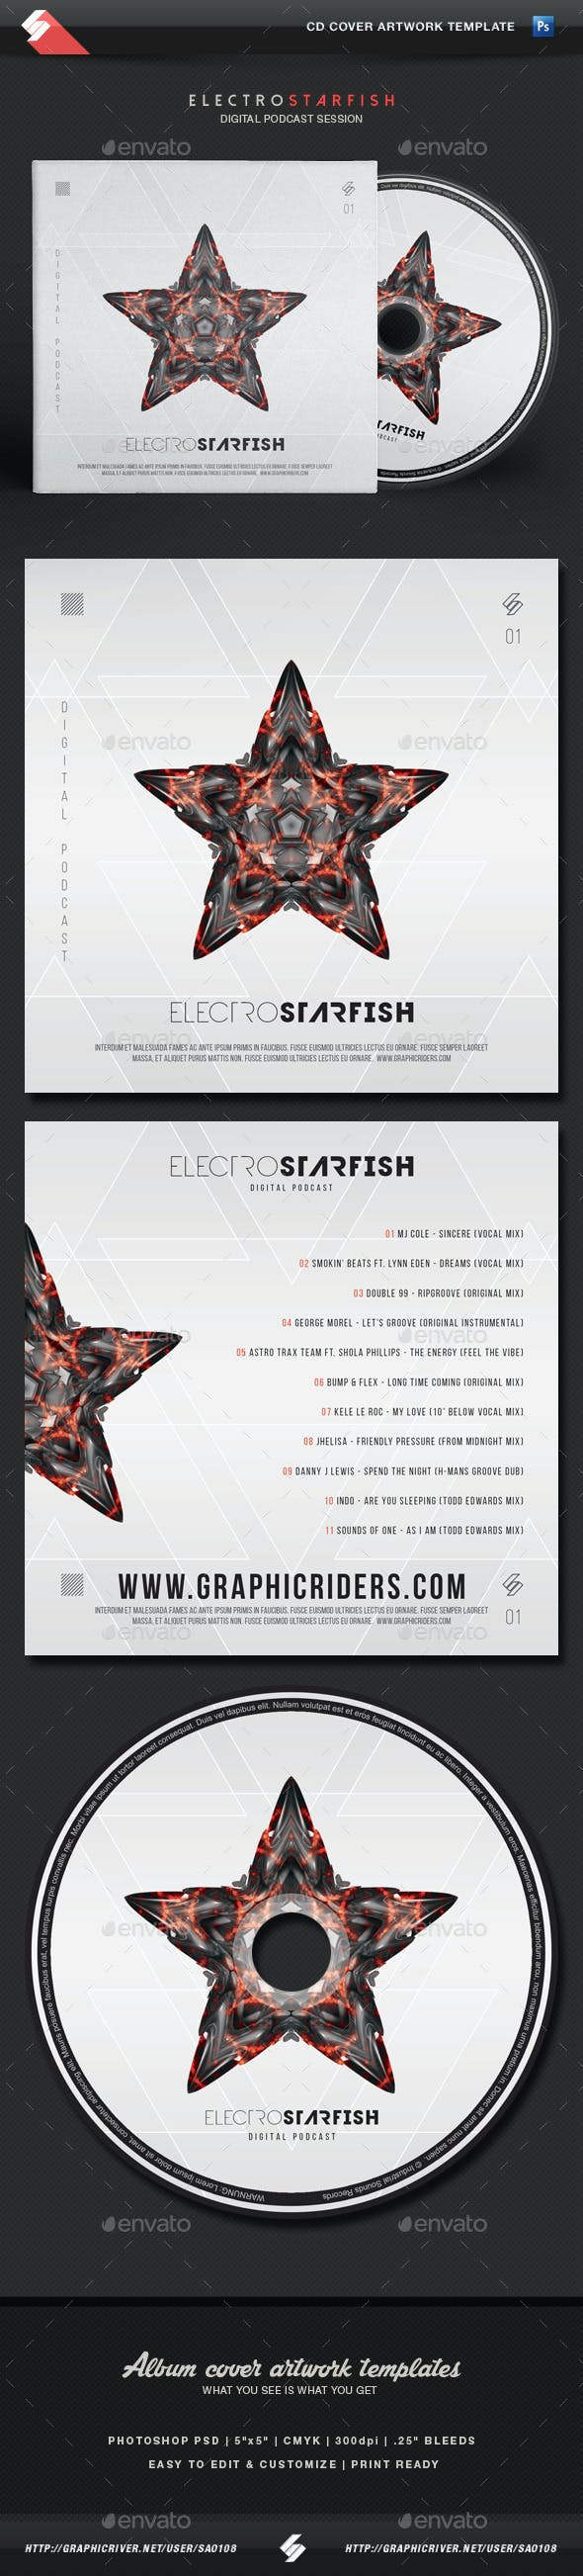 Electro Starfish - CD Cover Artwork Template